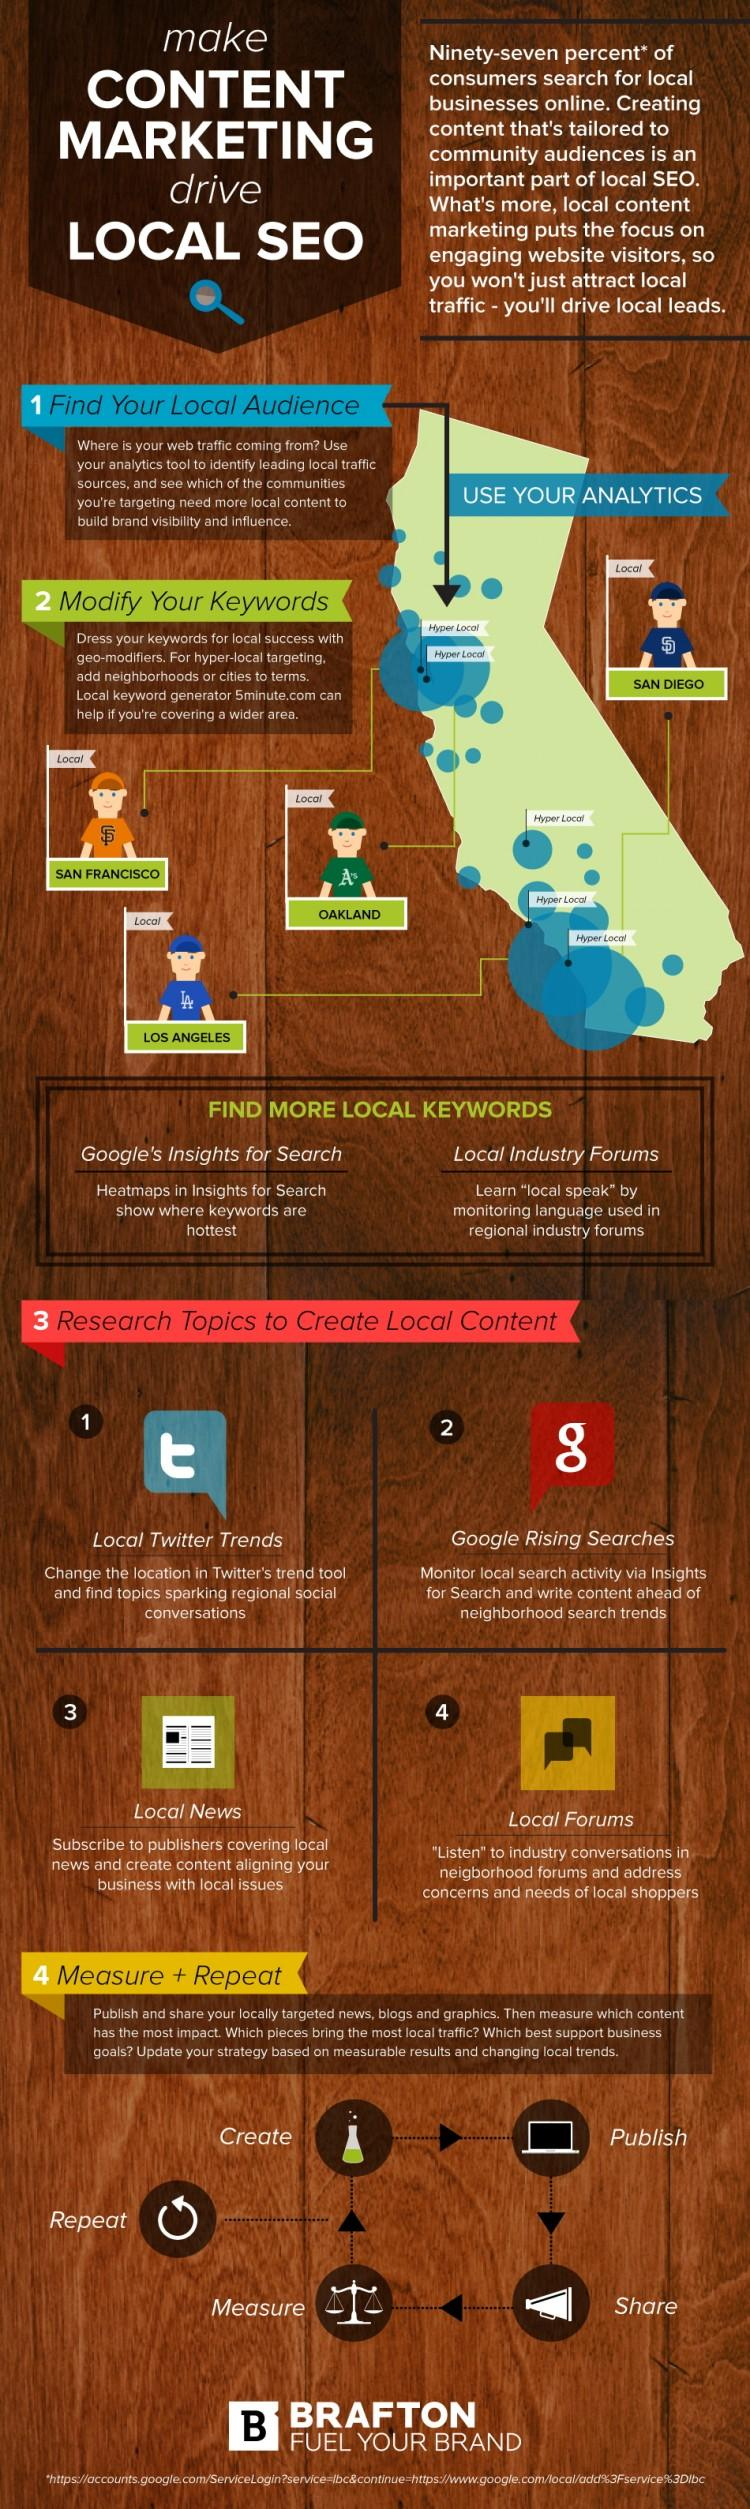 Brafton's Infographic: Make Content Marketing Drive Local SEO